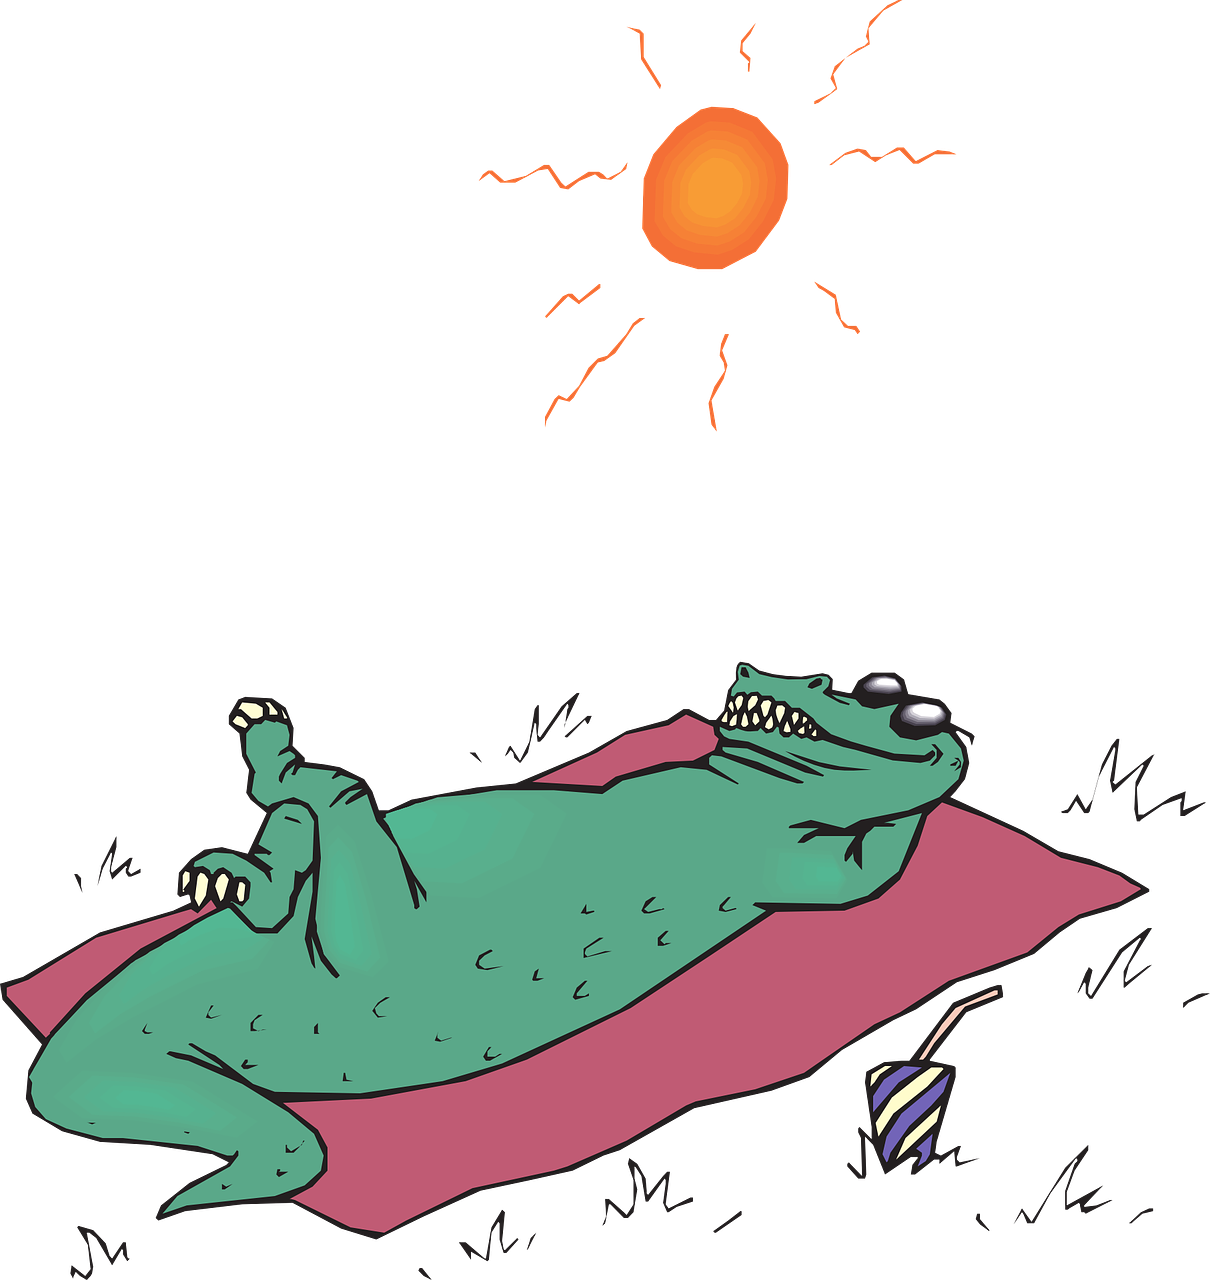 Heat clipart heat safety. Exhaustion and stroke medicine